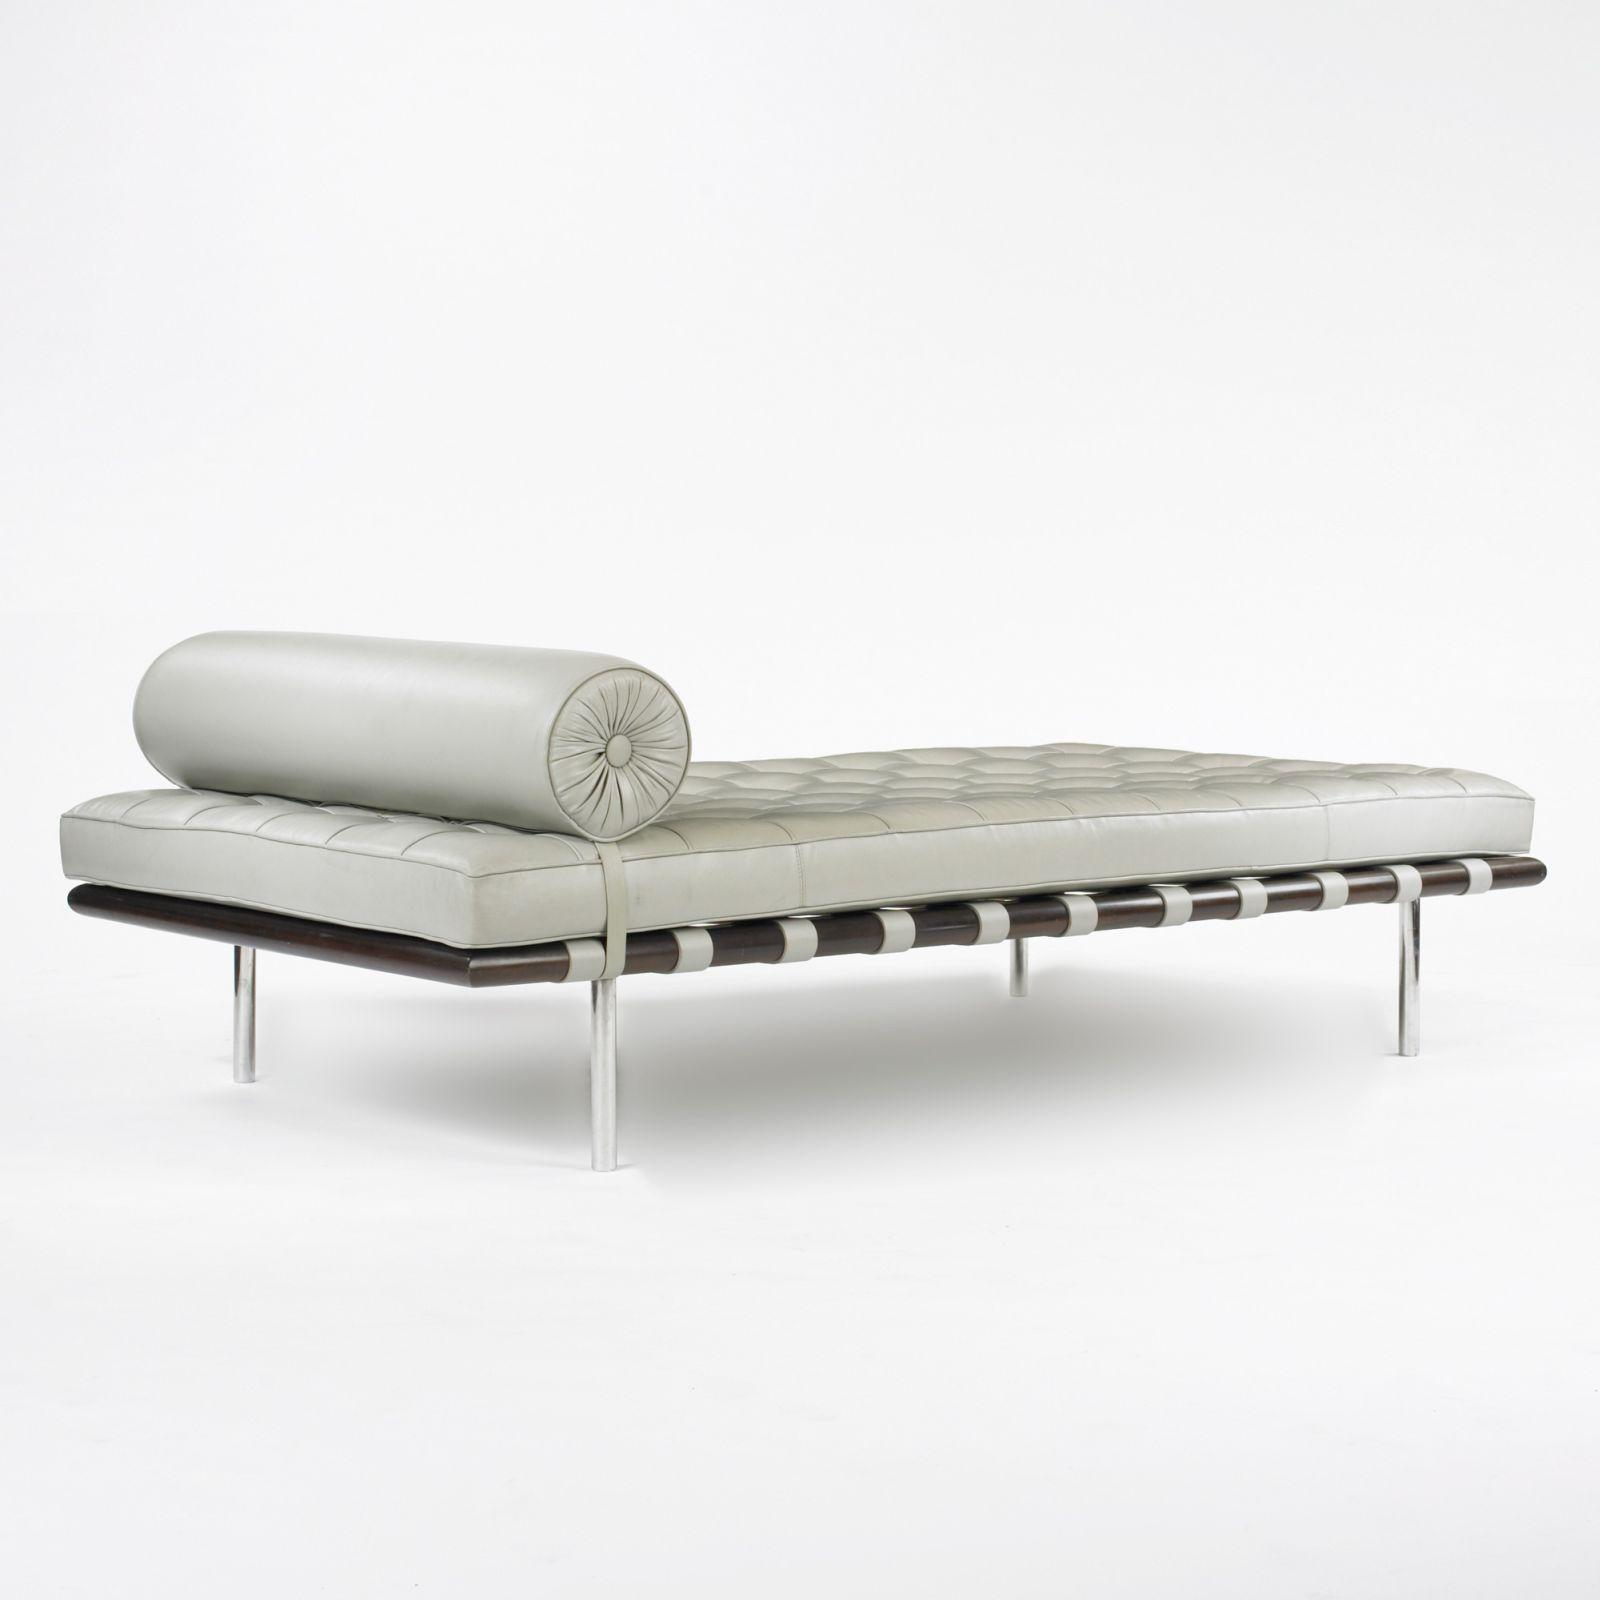 wright of auctions june couch rohe auction daybed design ludwig der mies van barcelona